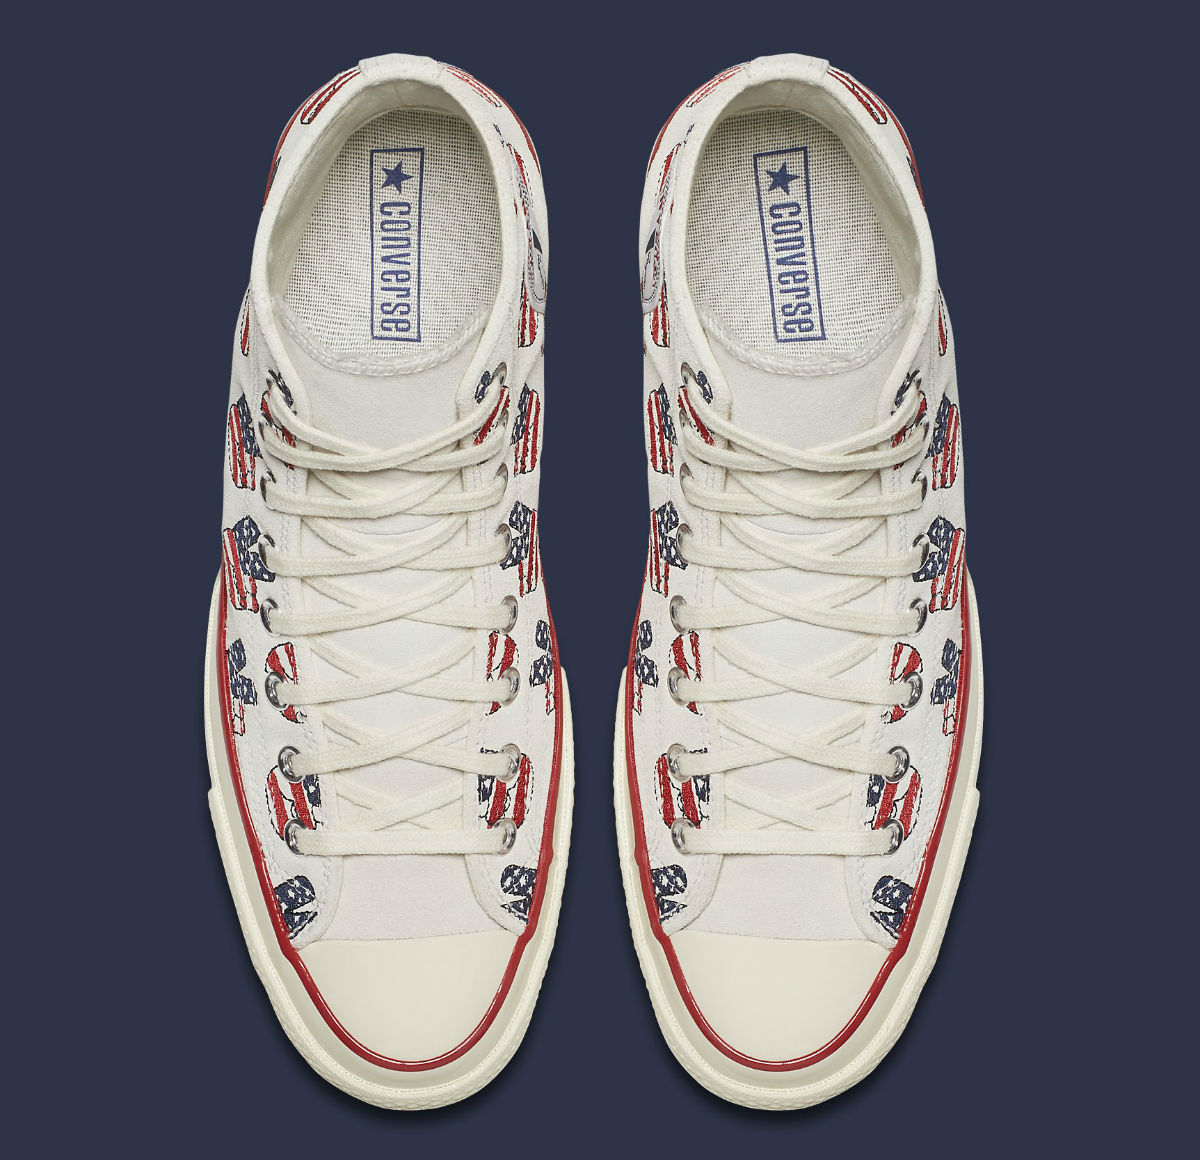 Converse Chuck Taylor Election Day Top 155450C-281